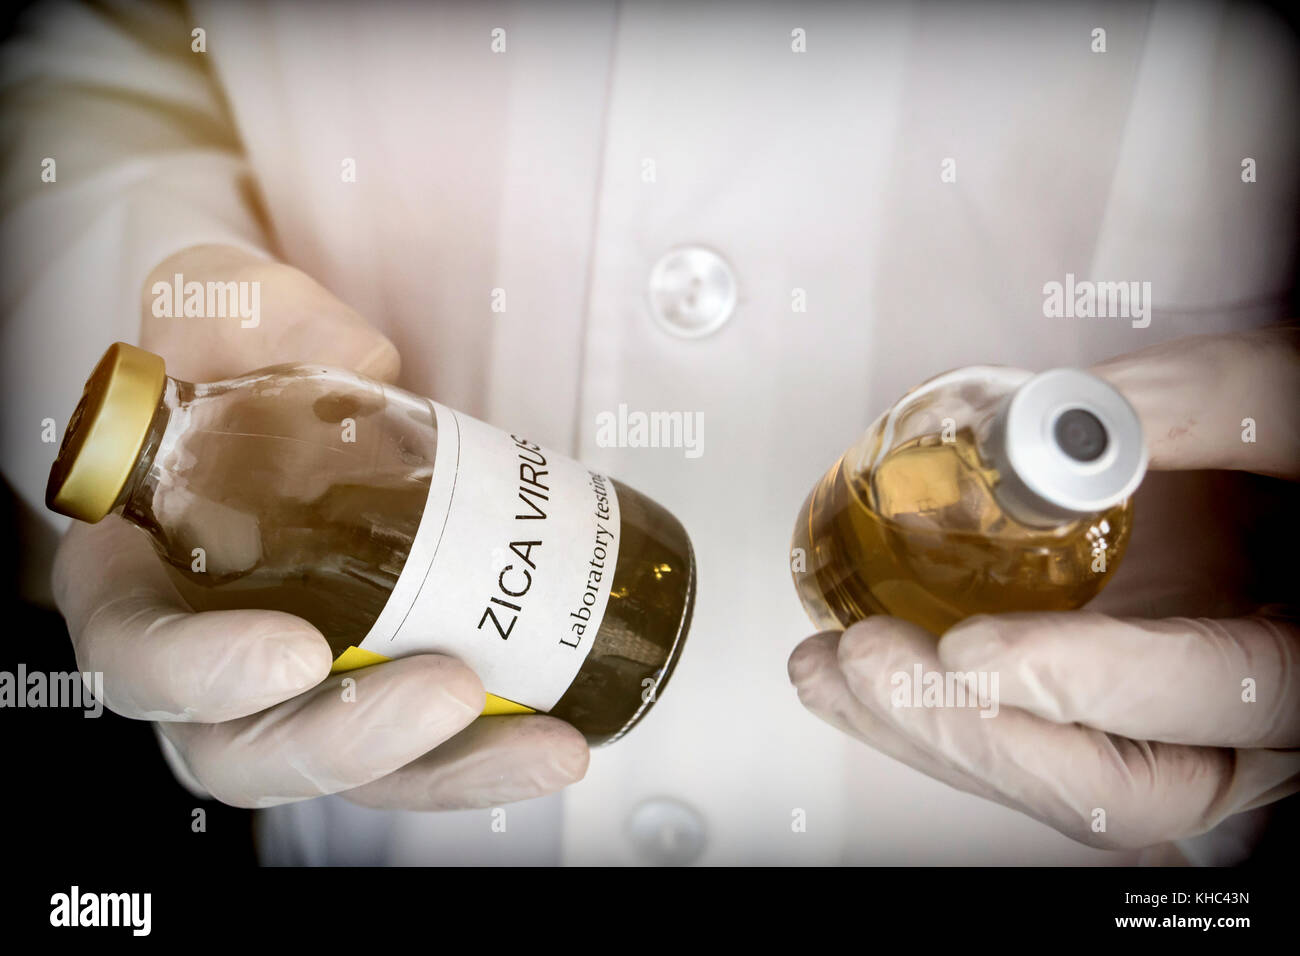 Doctor holds a sample vial of Zika virus in a hospital. Conceptual image - Stock Image